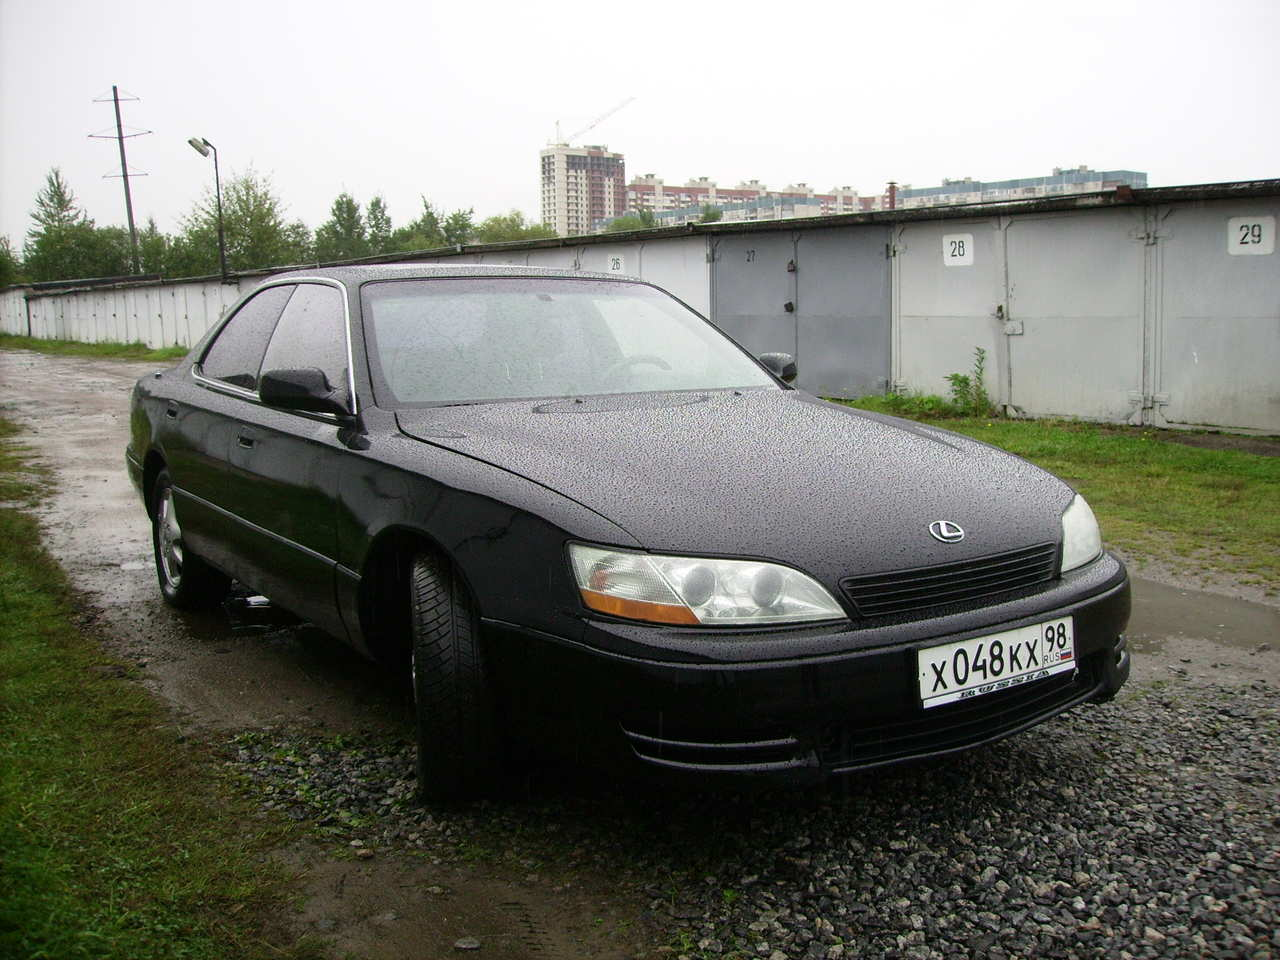 used 1994 lexus es300 photos 3000cc gasoline ff. Black Bedroom Furniture Sets. Home Design Ideas